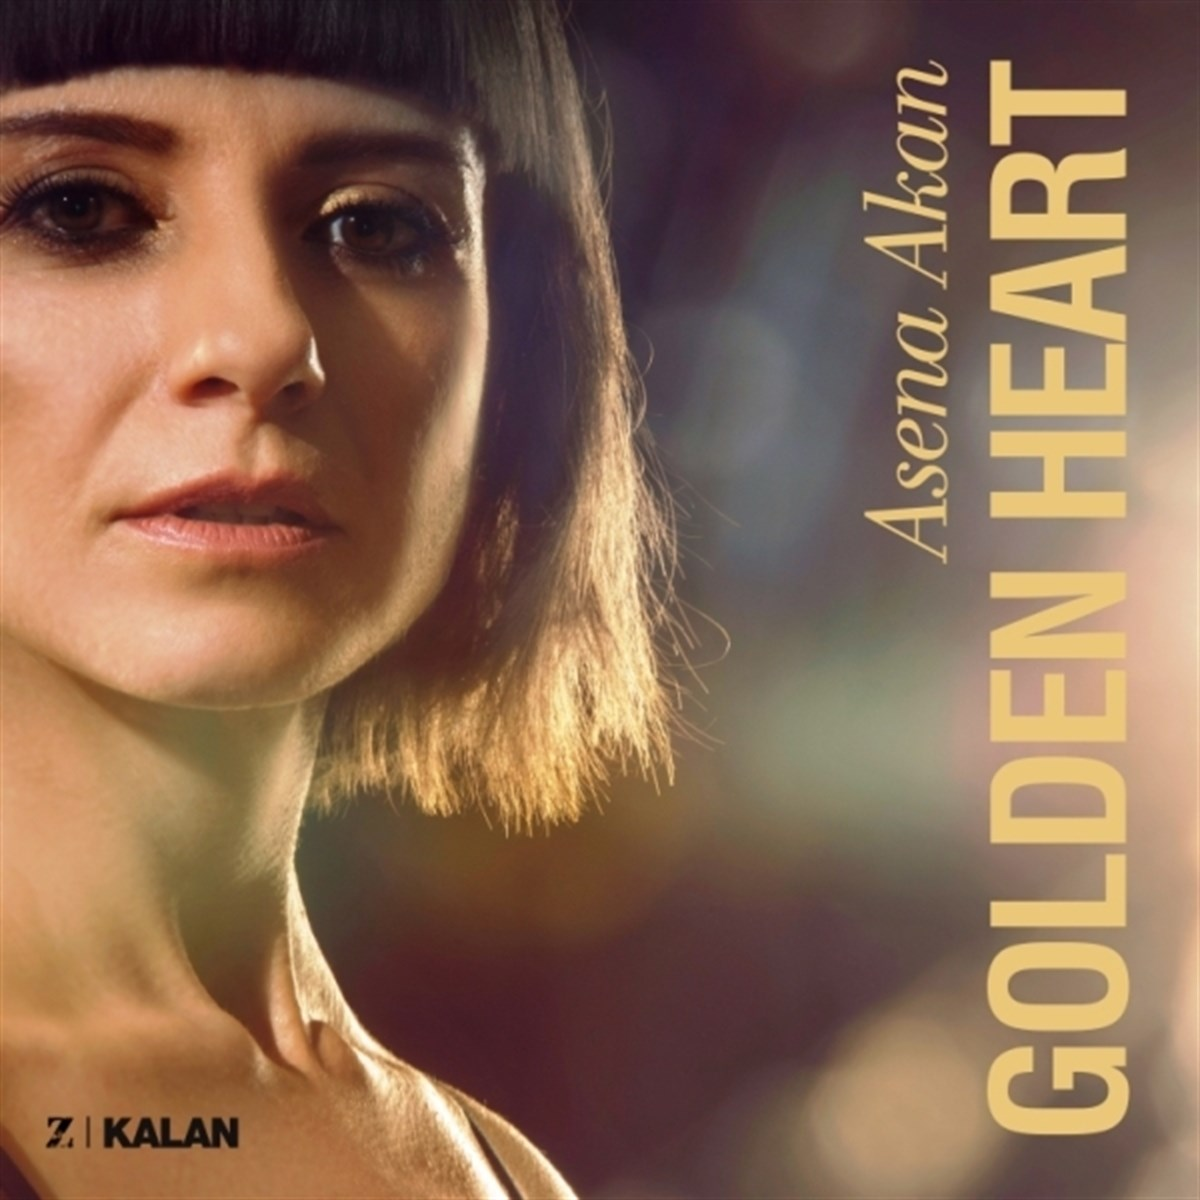 Asena Akan Golden Heart